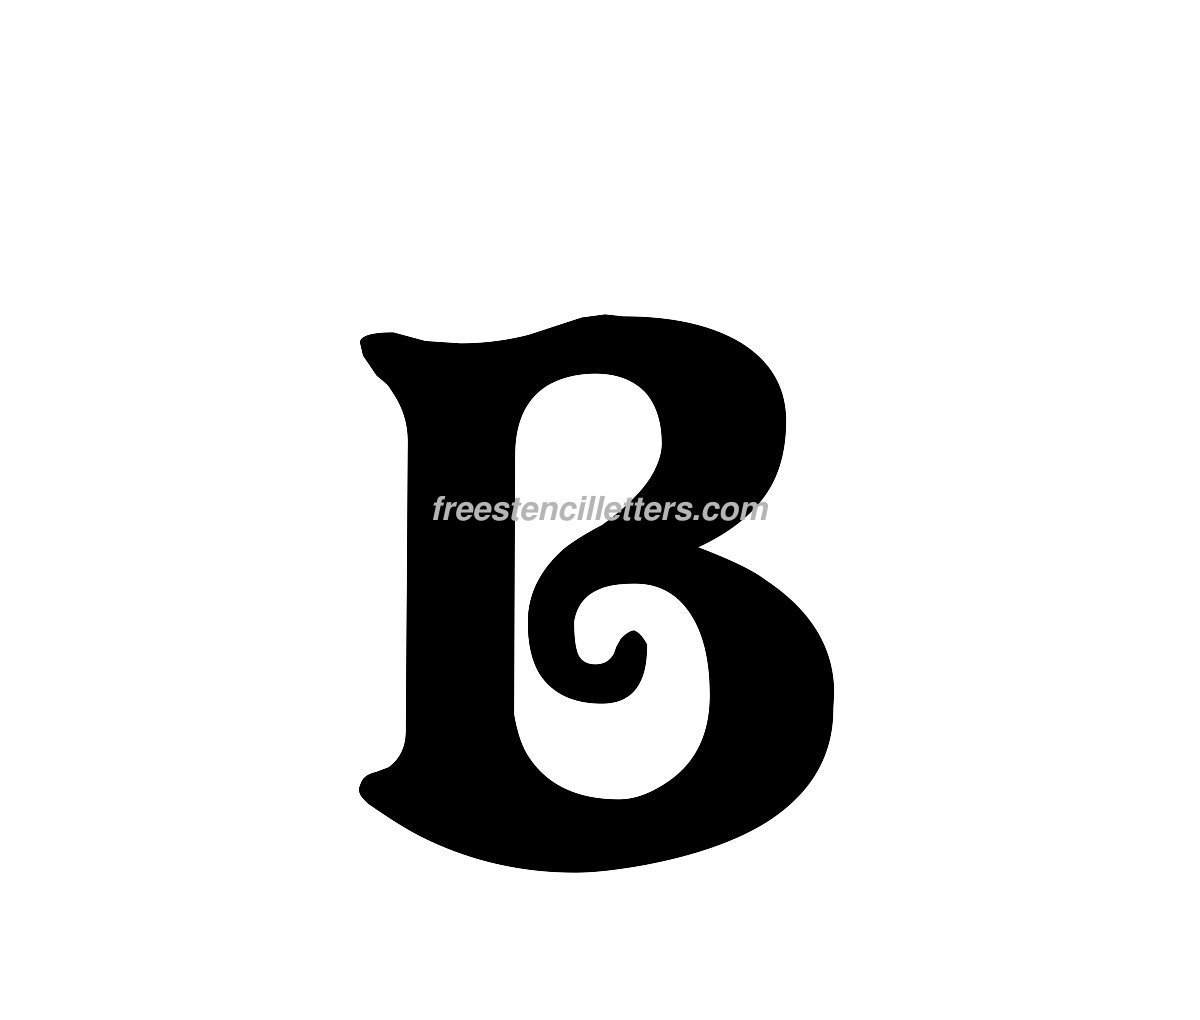 ... archives free stencil letters : Large Printable Letters To Cut Out